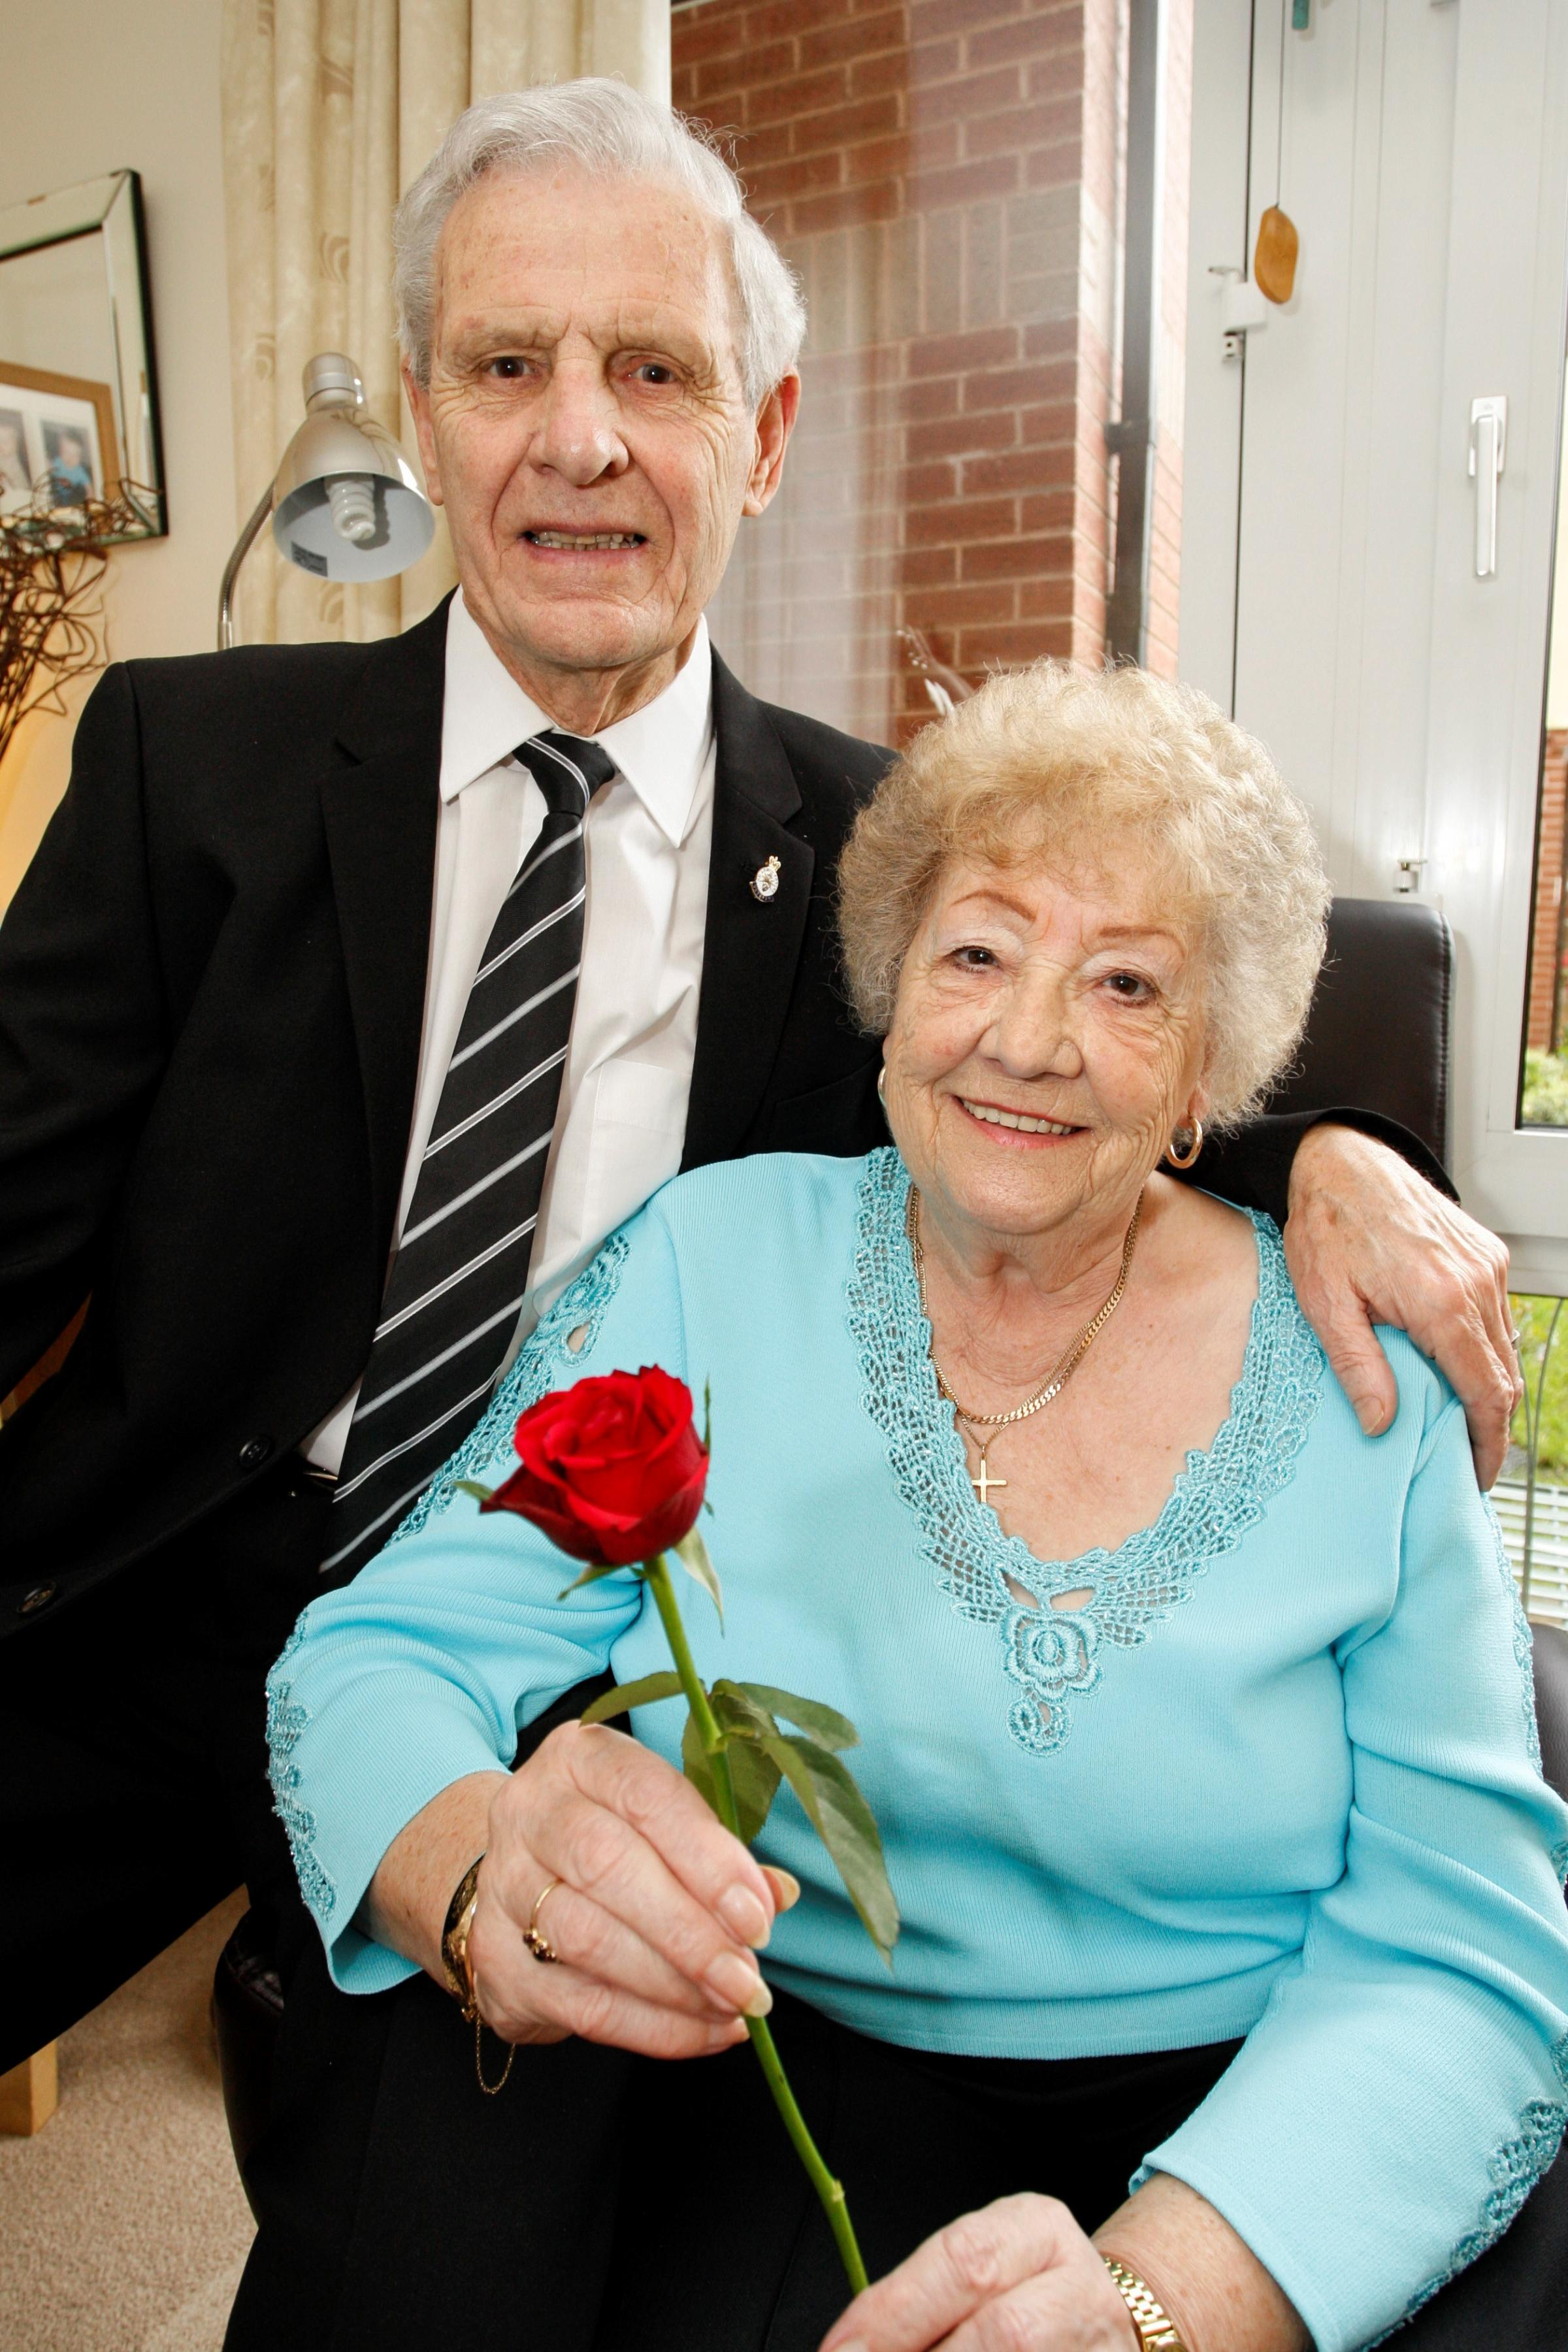 Ted and Joan Morgan celebrating their 60th wedding anniversary. Buy this photo Ref. RC141401_01 at redditchadvertiser.co.uk/pictures or call 01527 889027.